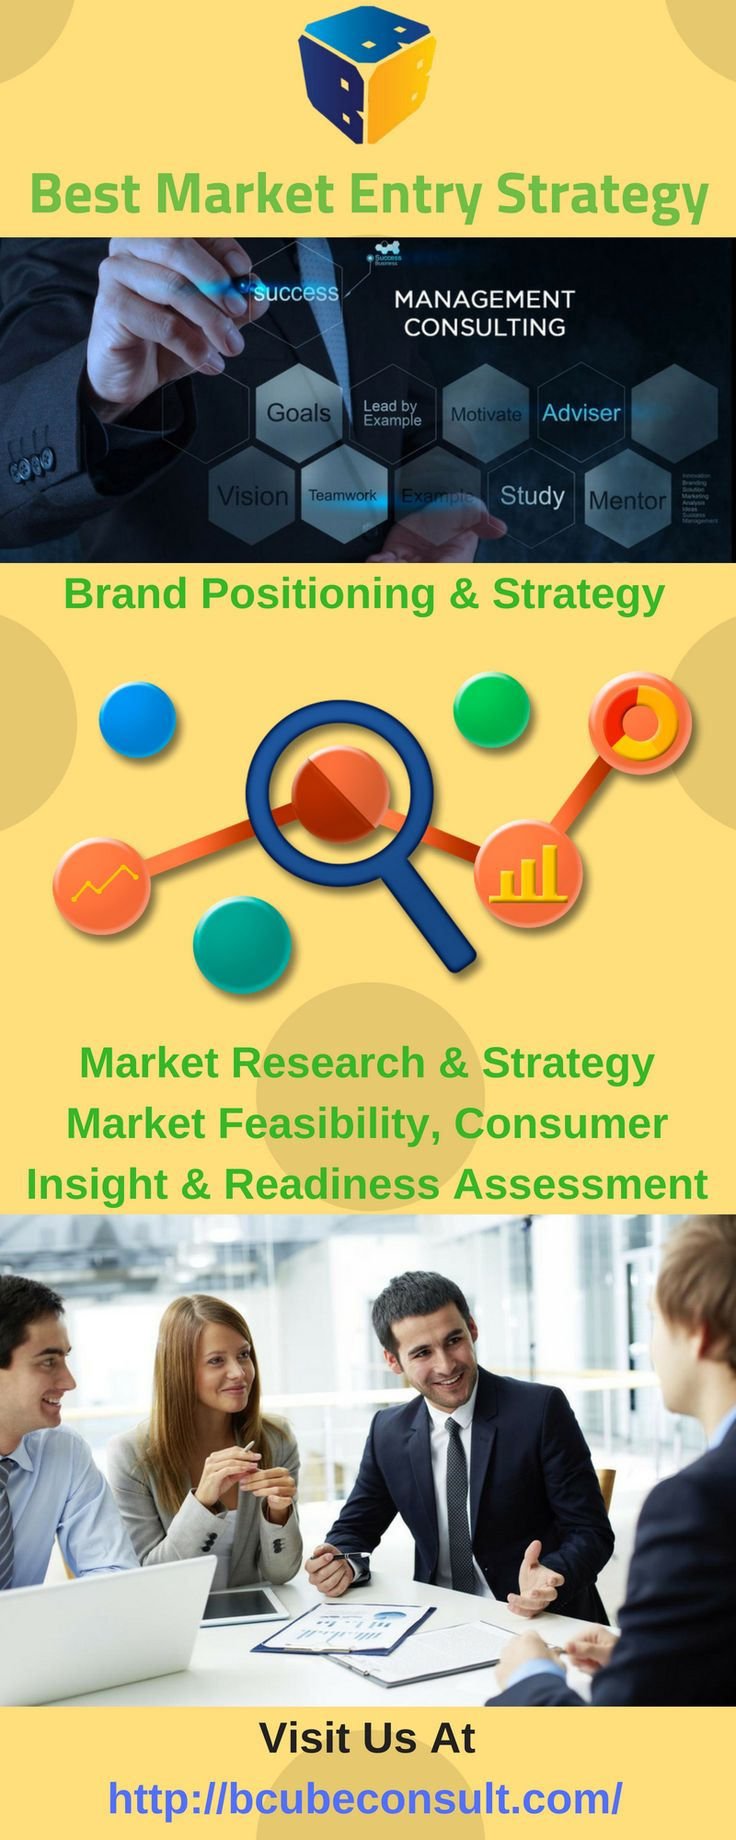 Best Market Entry Strategy Being pioneer in management